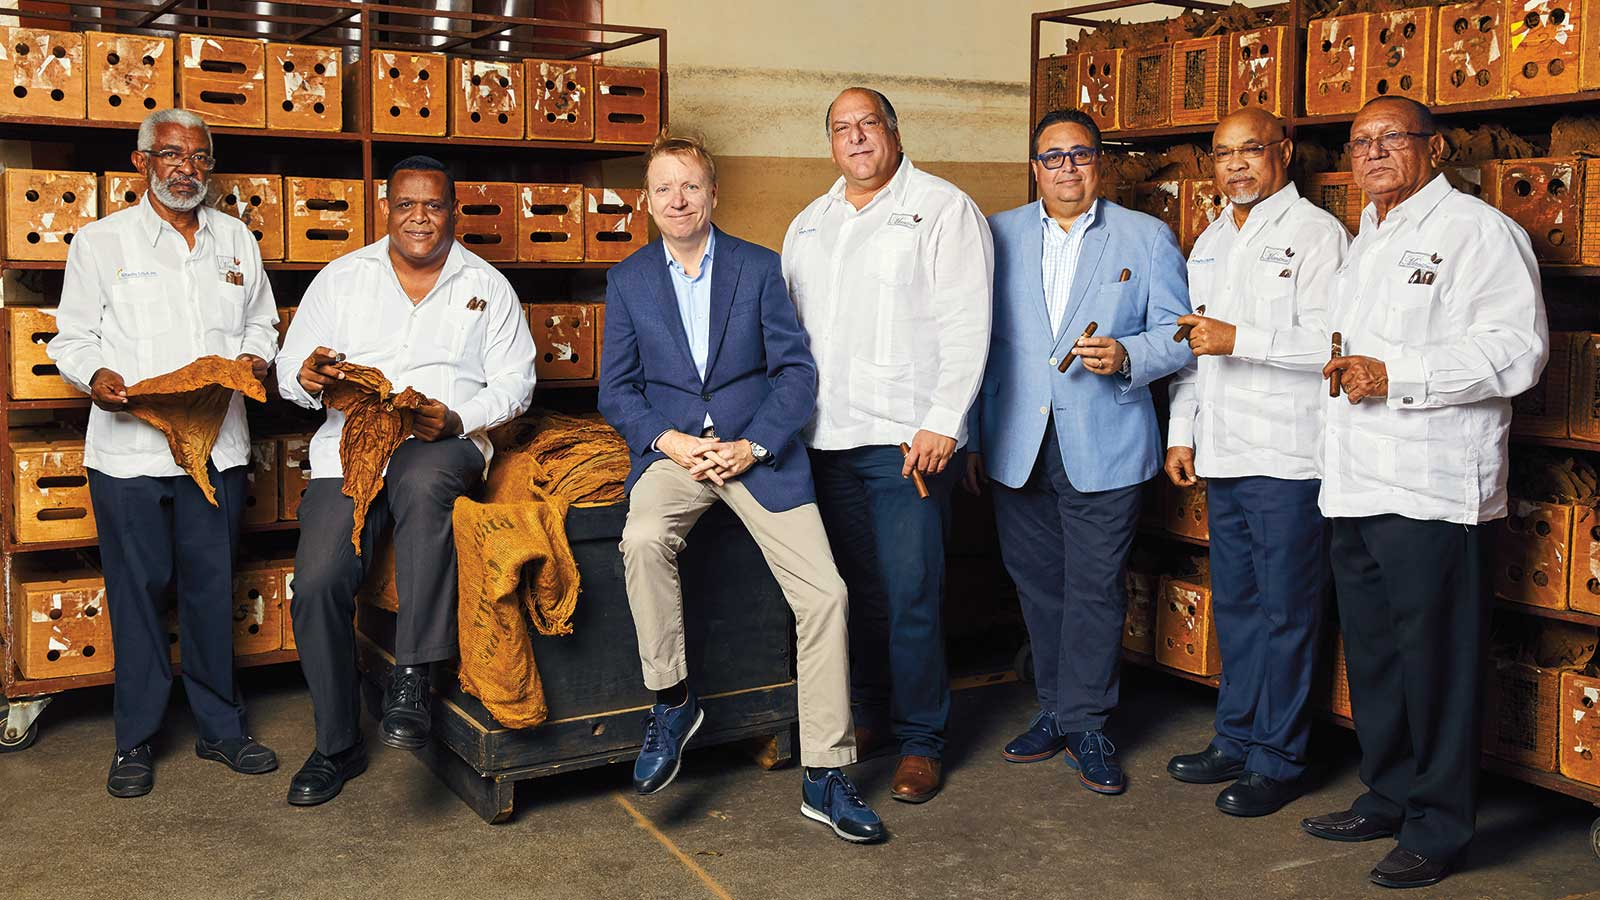 These stewards of Tabacalera de Garcia ensure quality and consistency for the brands of Altadis. They stand in front of blend boxes on the factory floor. From left to right: Nestor Rodriguez, Pedro Ventura, Javier Estades, Javier Elmudesi, Rafael Nodal, Carlos Travieso and Victor Avila.